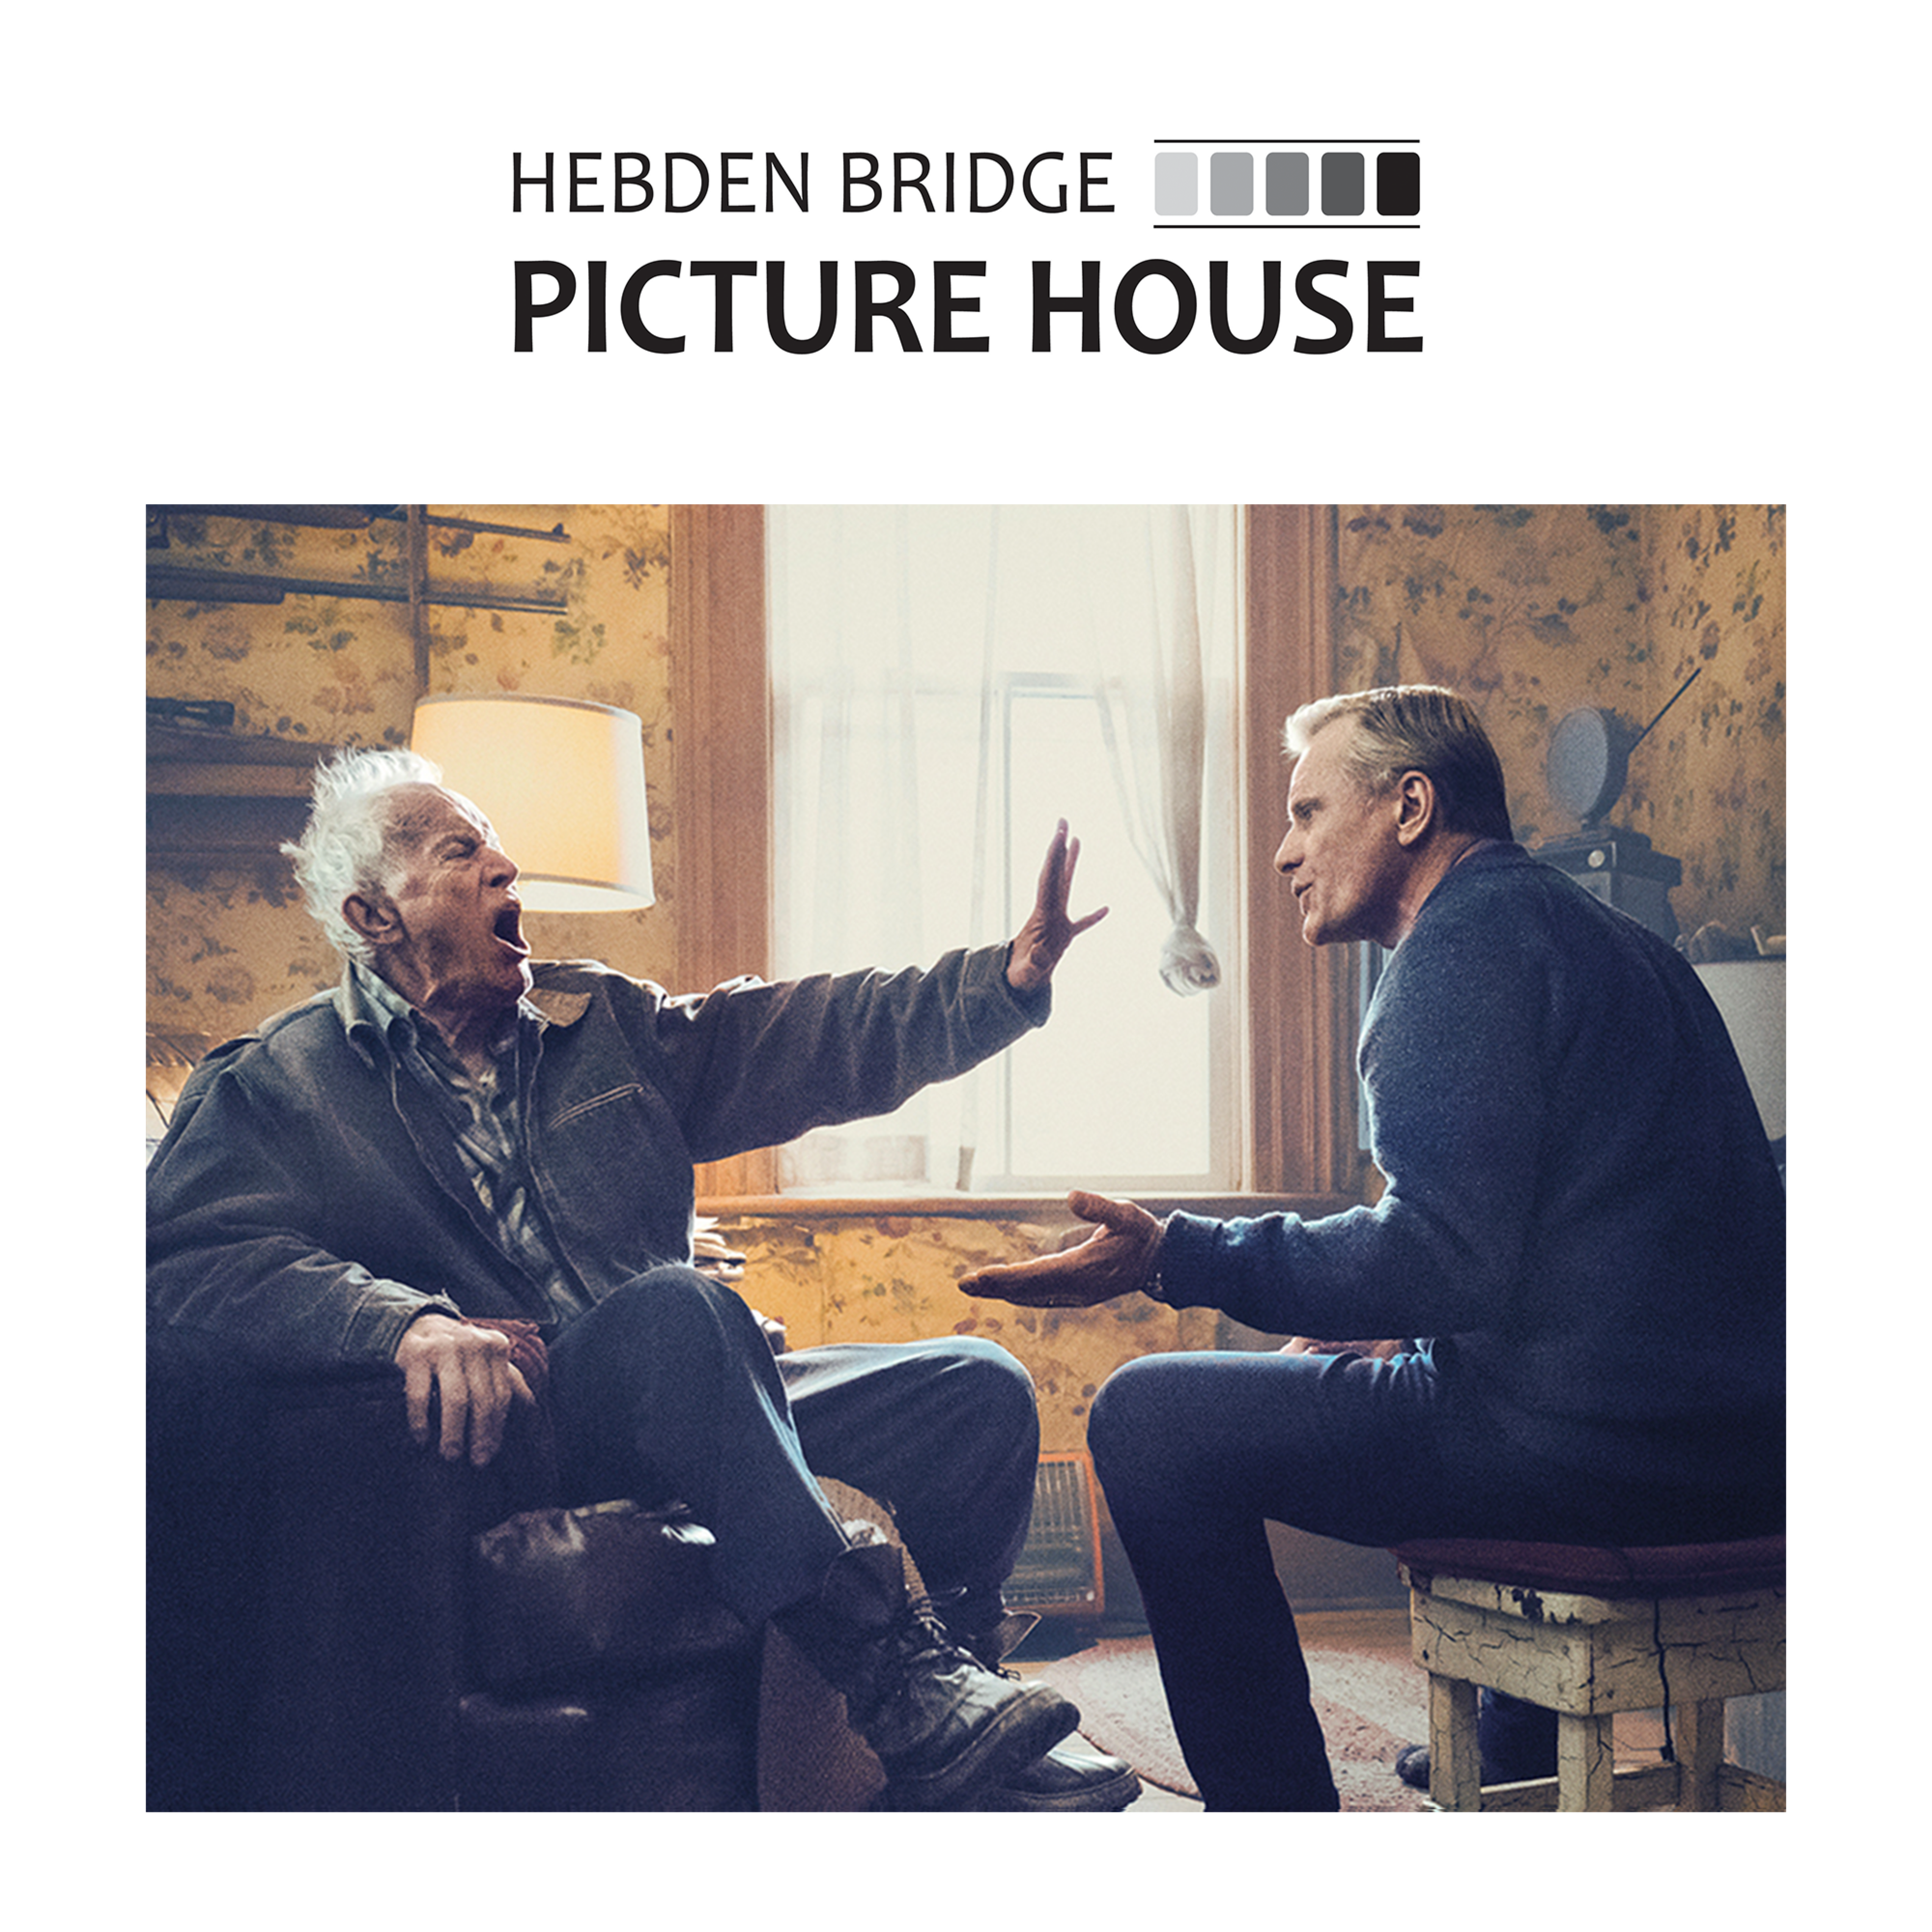 Falling at Hebden Bridge Picture House